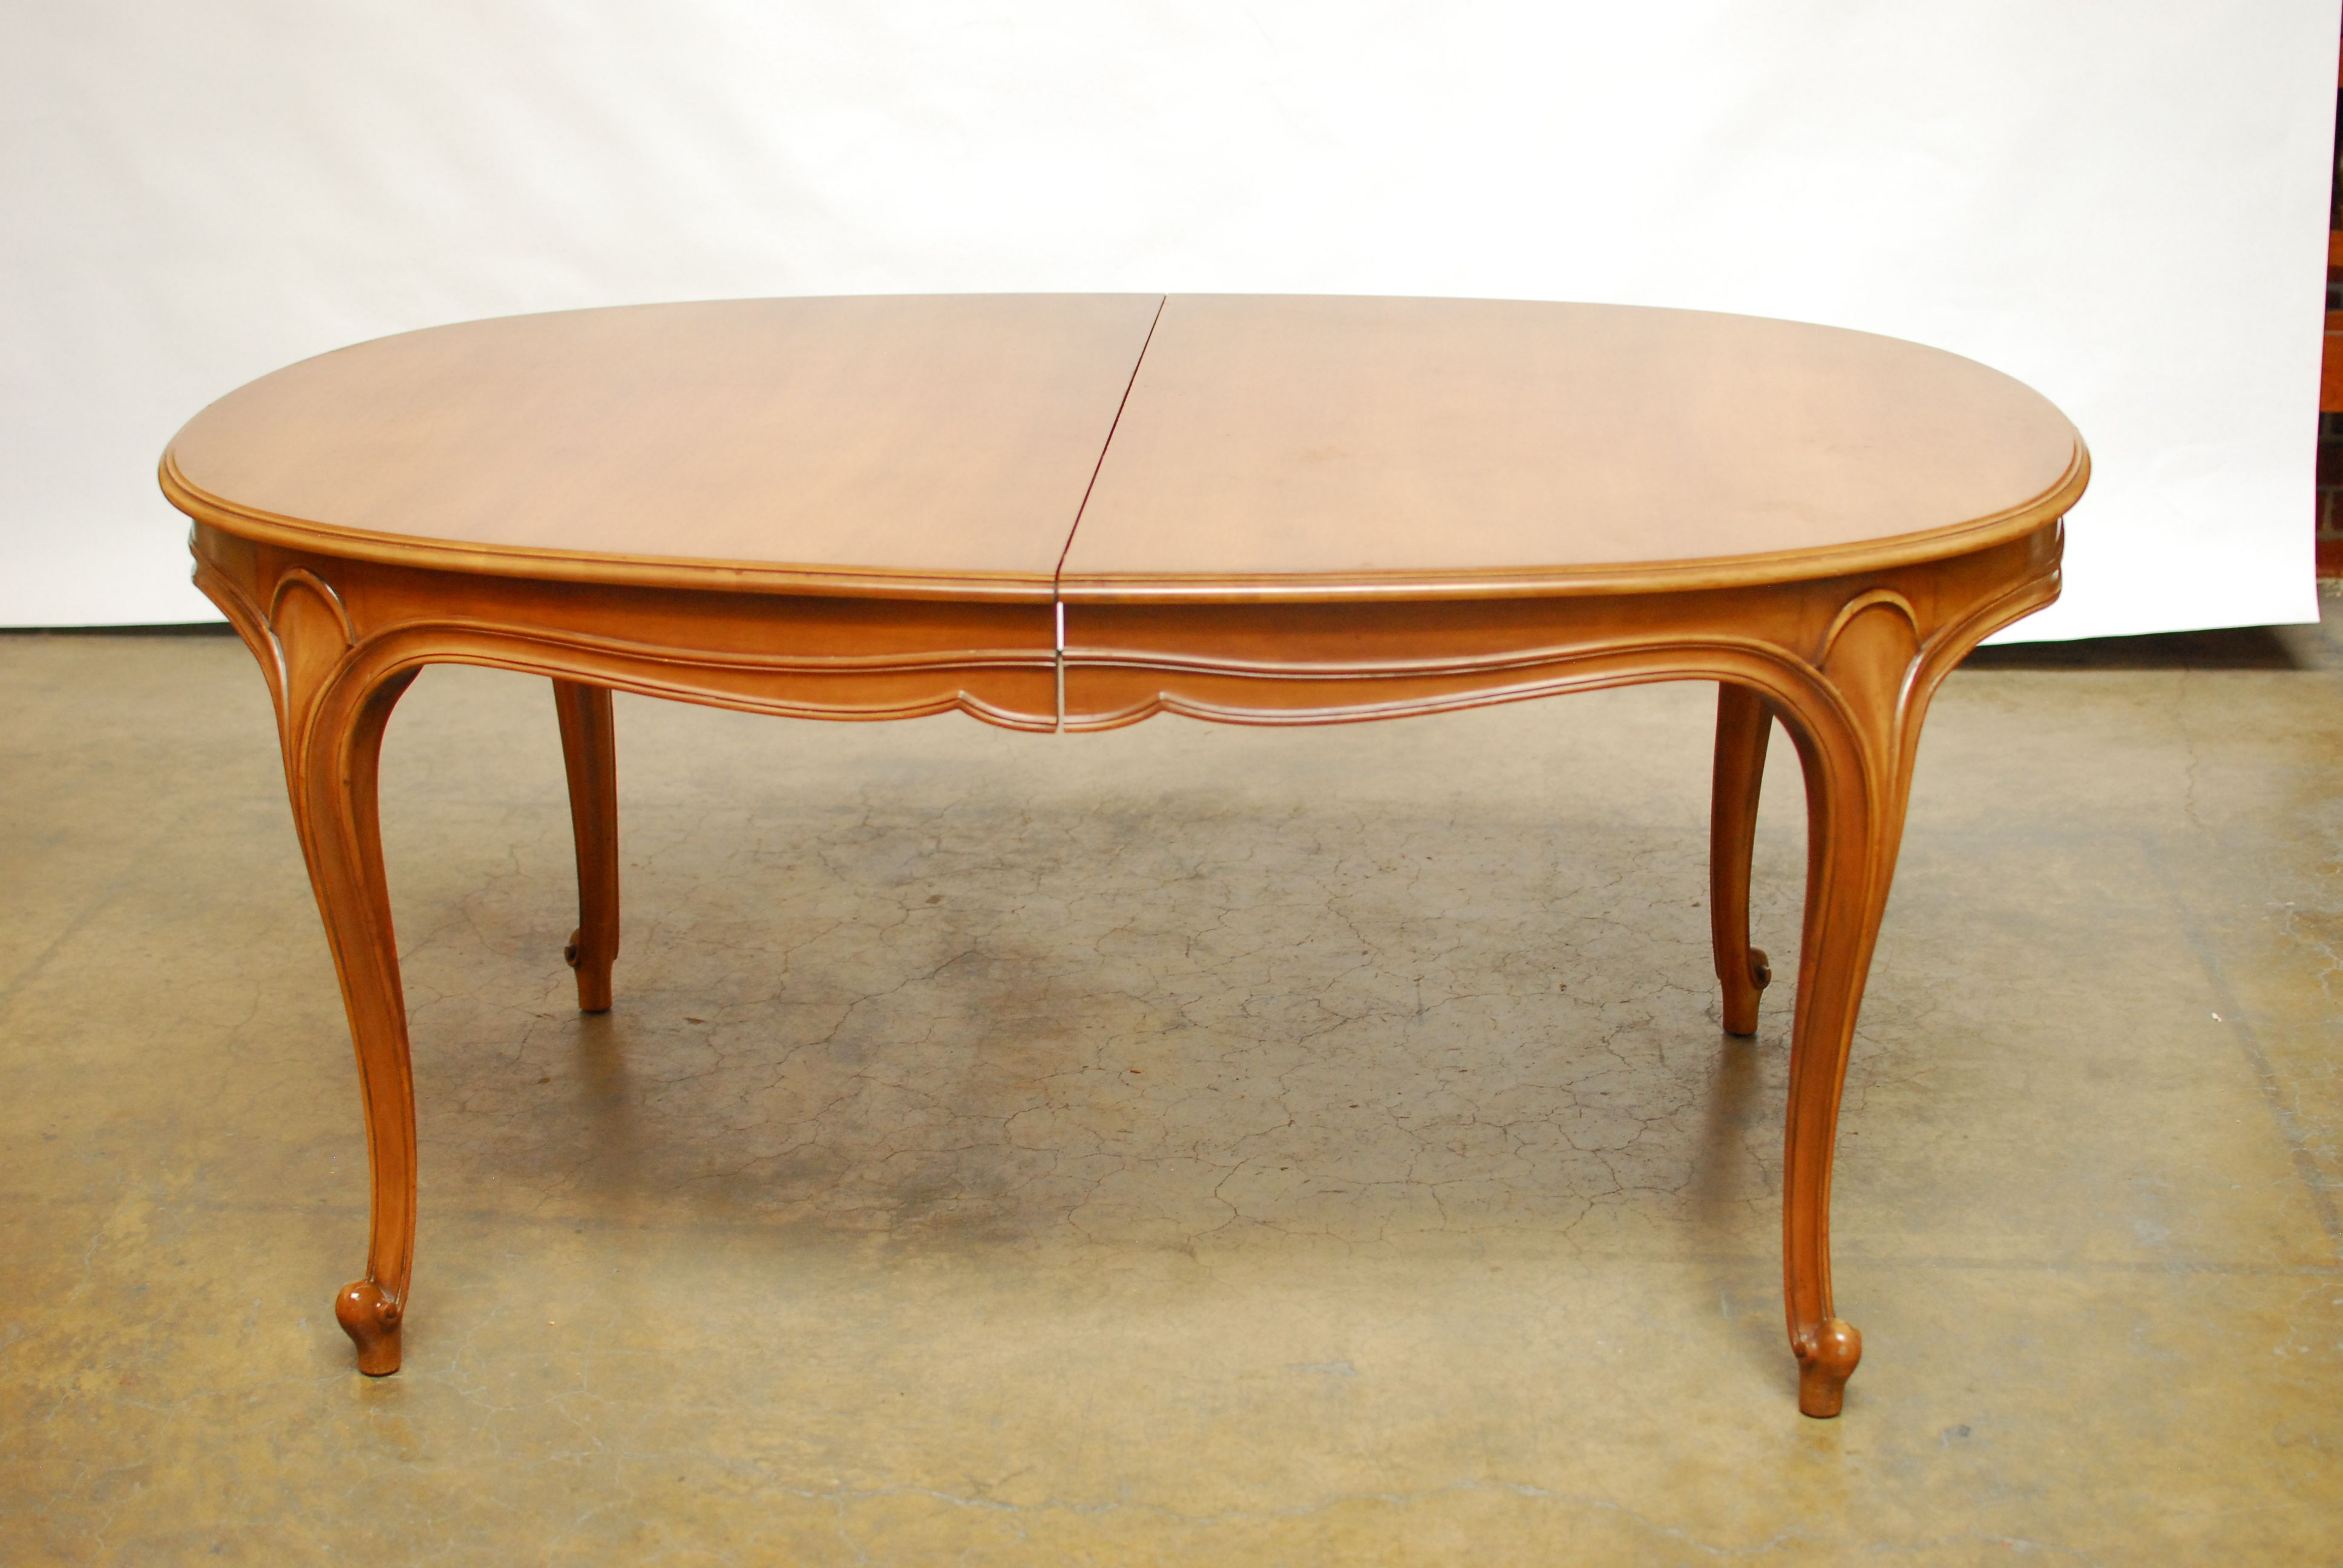 Dining Table W Leaves Drexel French Provincial Dining Table W - Dining table with 3 leaves